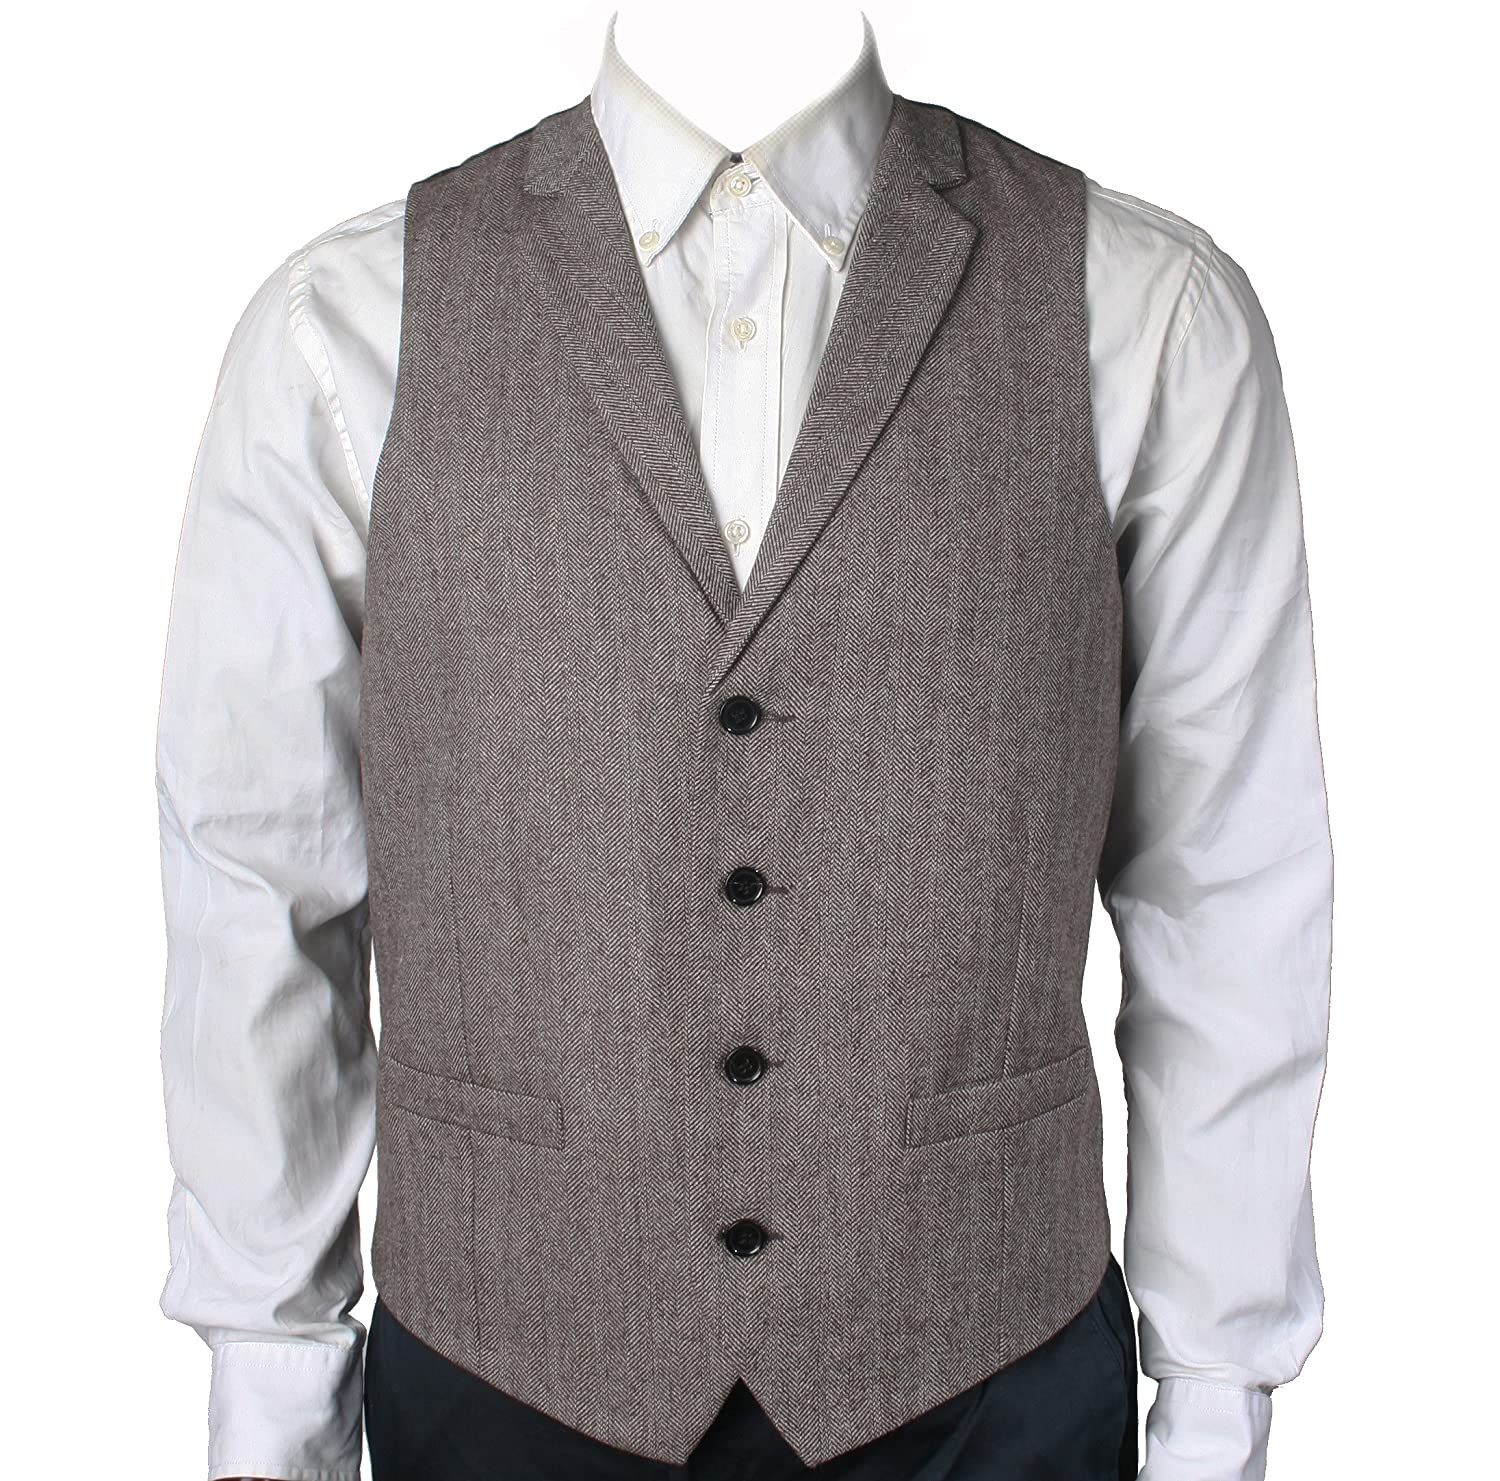 1900s Edwardian Men's Suits and Coats Herringbone/Tweed Tailored Collar Suit Vest $37.00 AT vintagedancer.com